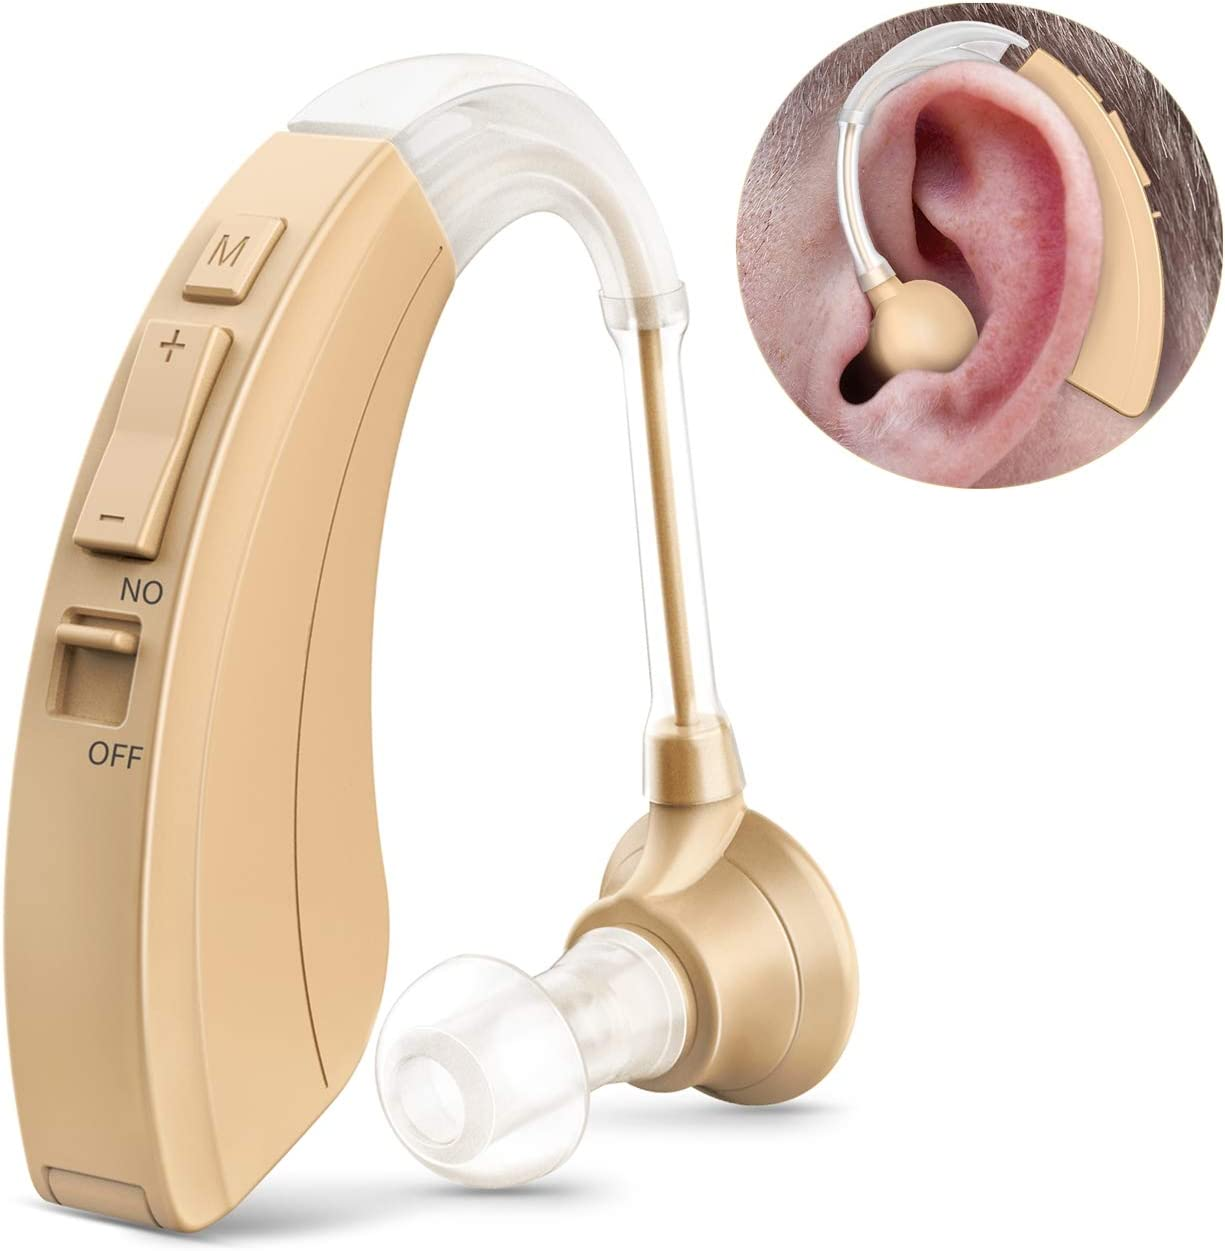 Digital Hearing Amplifier Personal Sound Device for Adults & Seniors, Ear Sound Enhancer, 500 Hours Per Battery Life and Hearing Aid Cleaning Brush Included